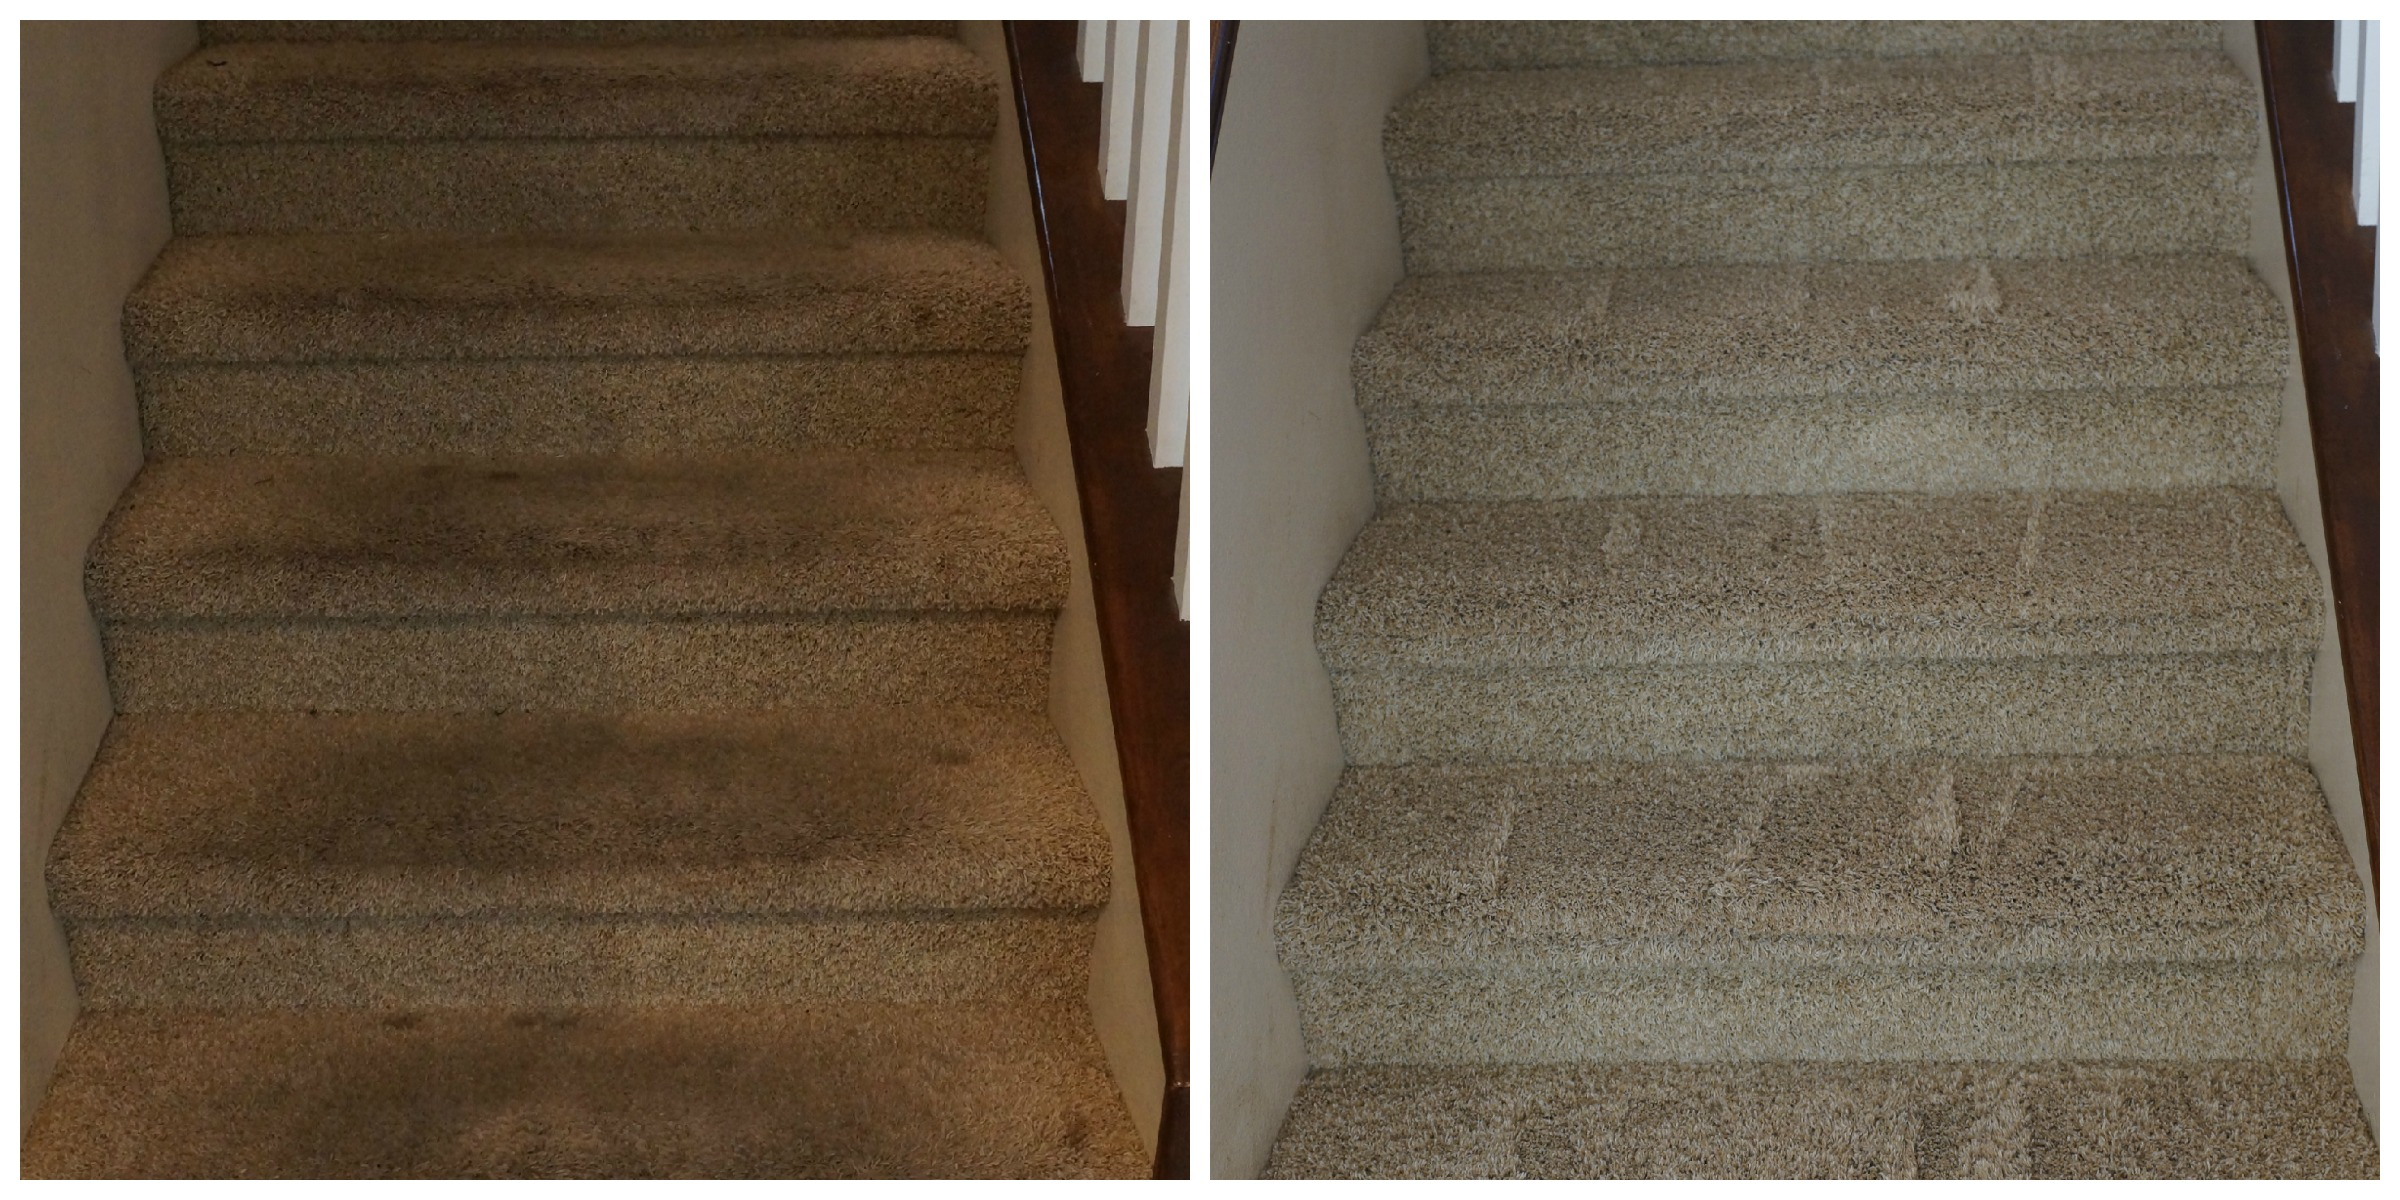 How To Clean Your Carpets Without Chemicals Oc Mom Blog